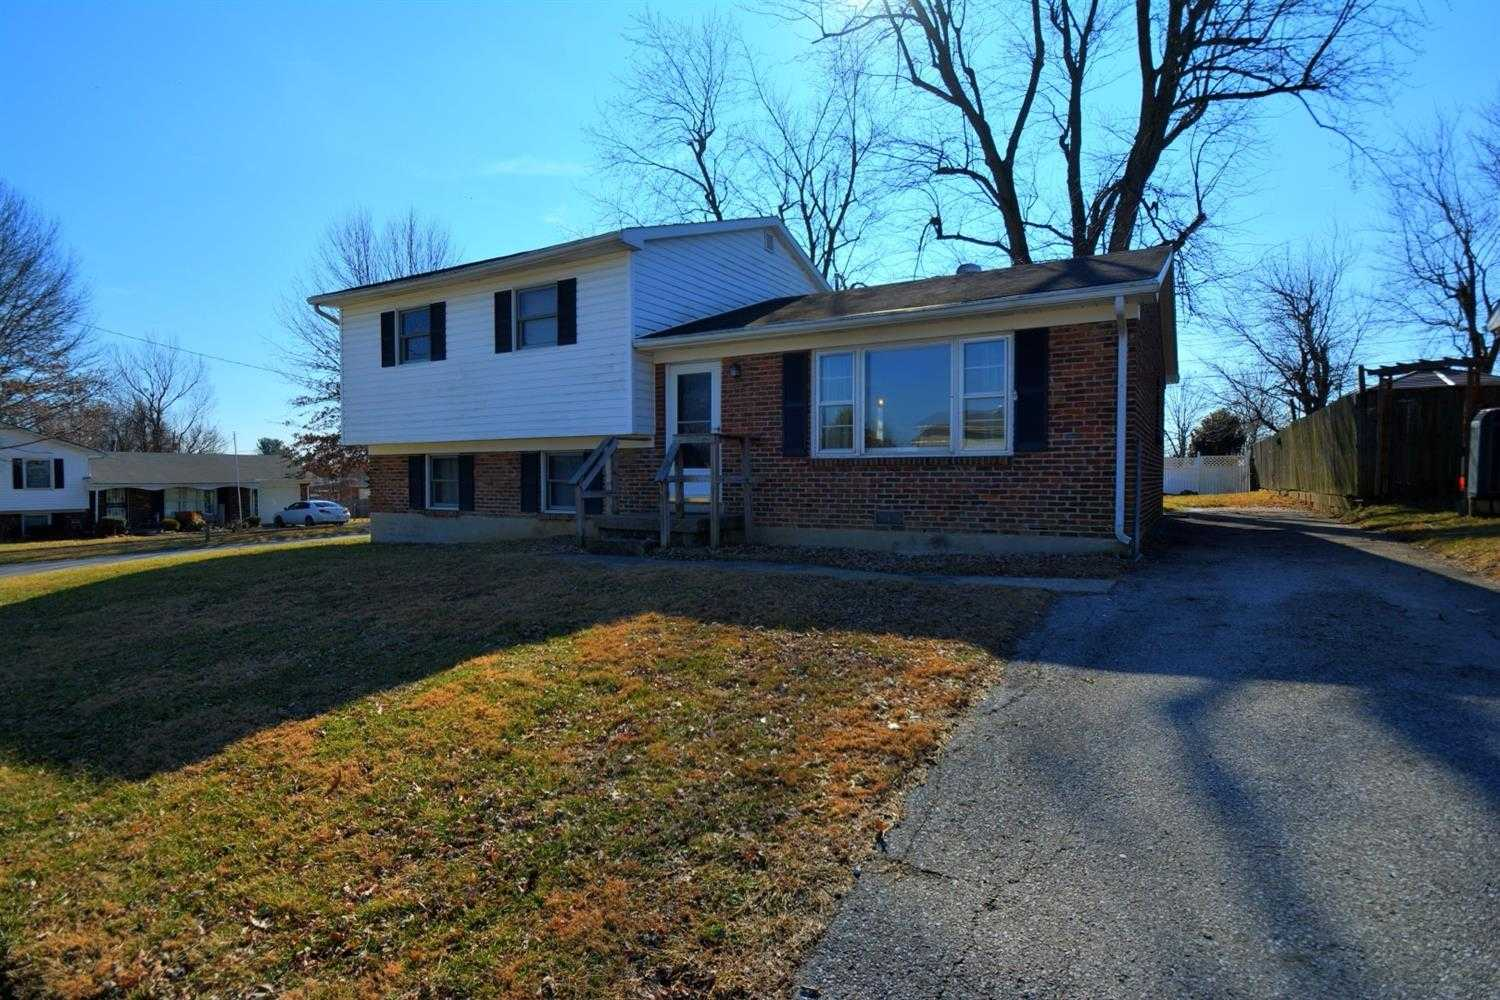 $129,900 - 3Br/2Ba -  for Sale in Merewood, Versailles